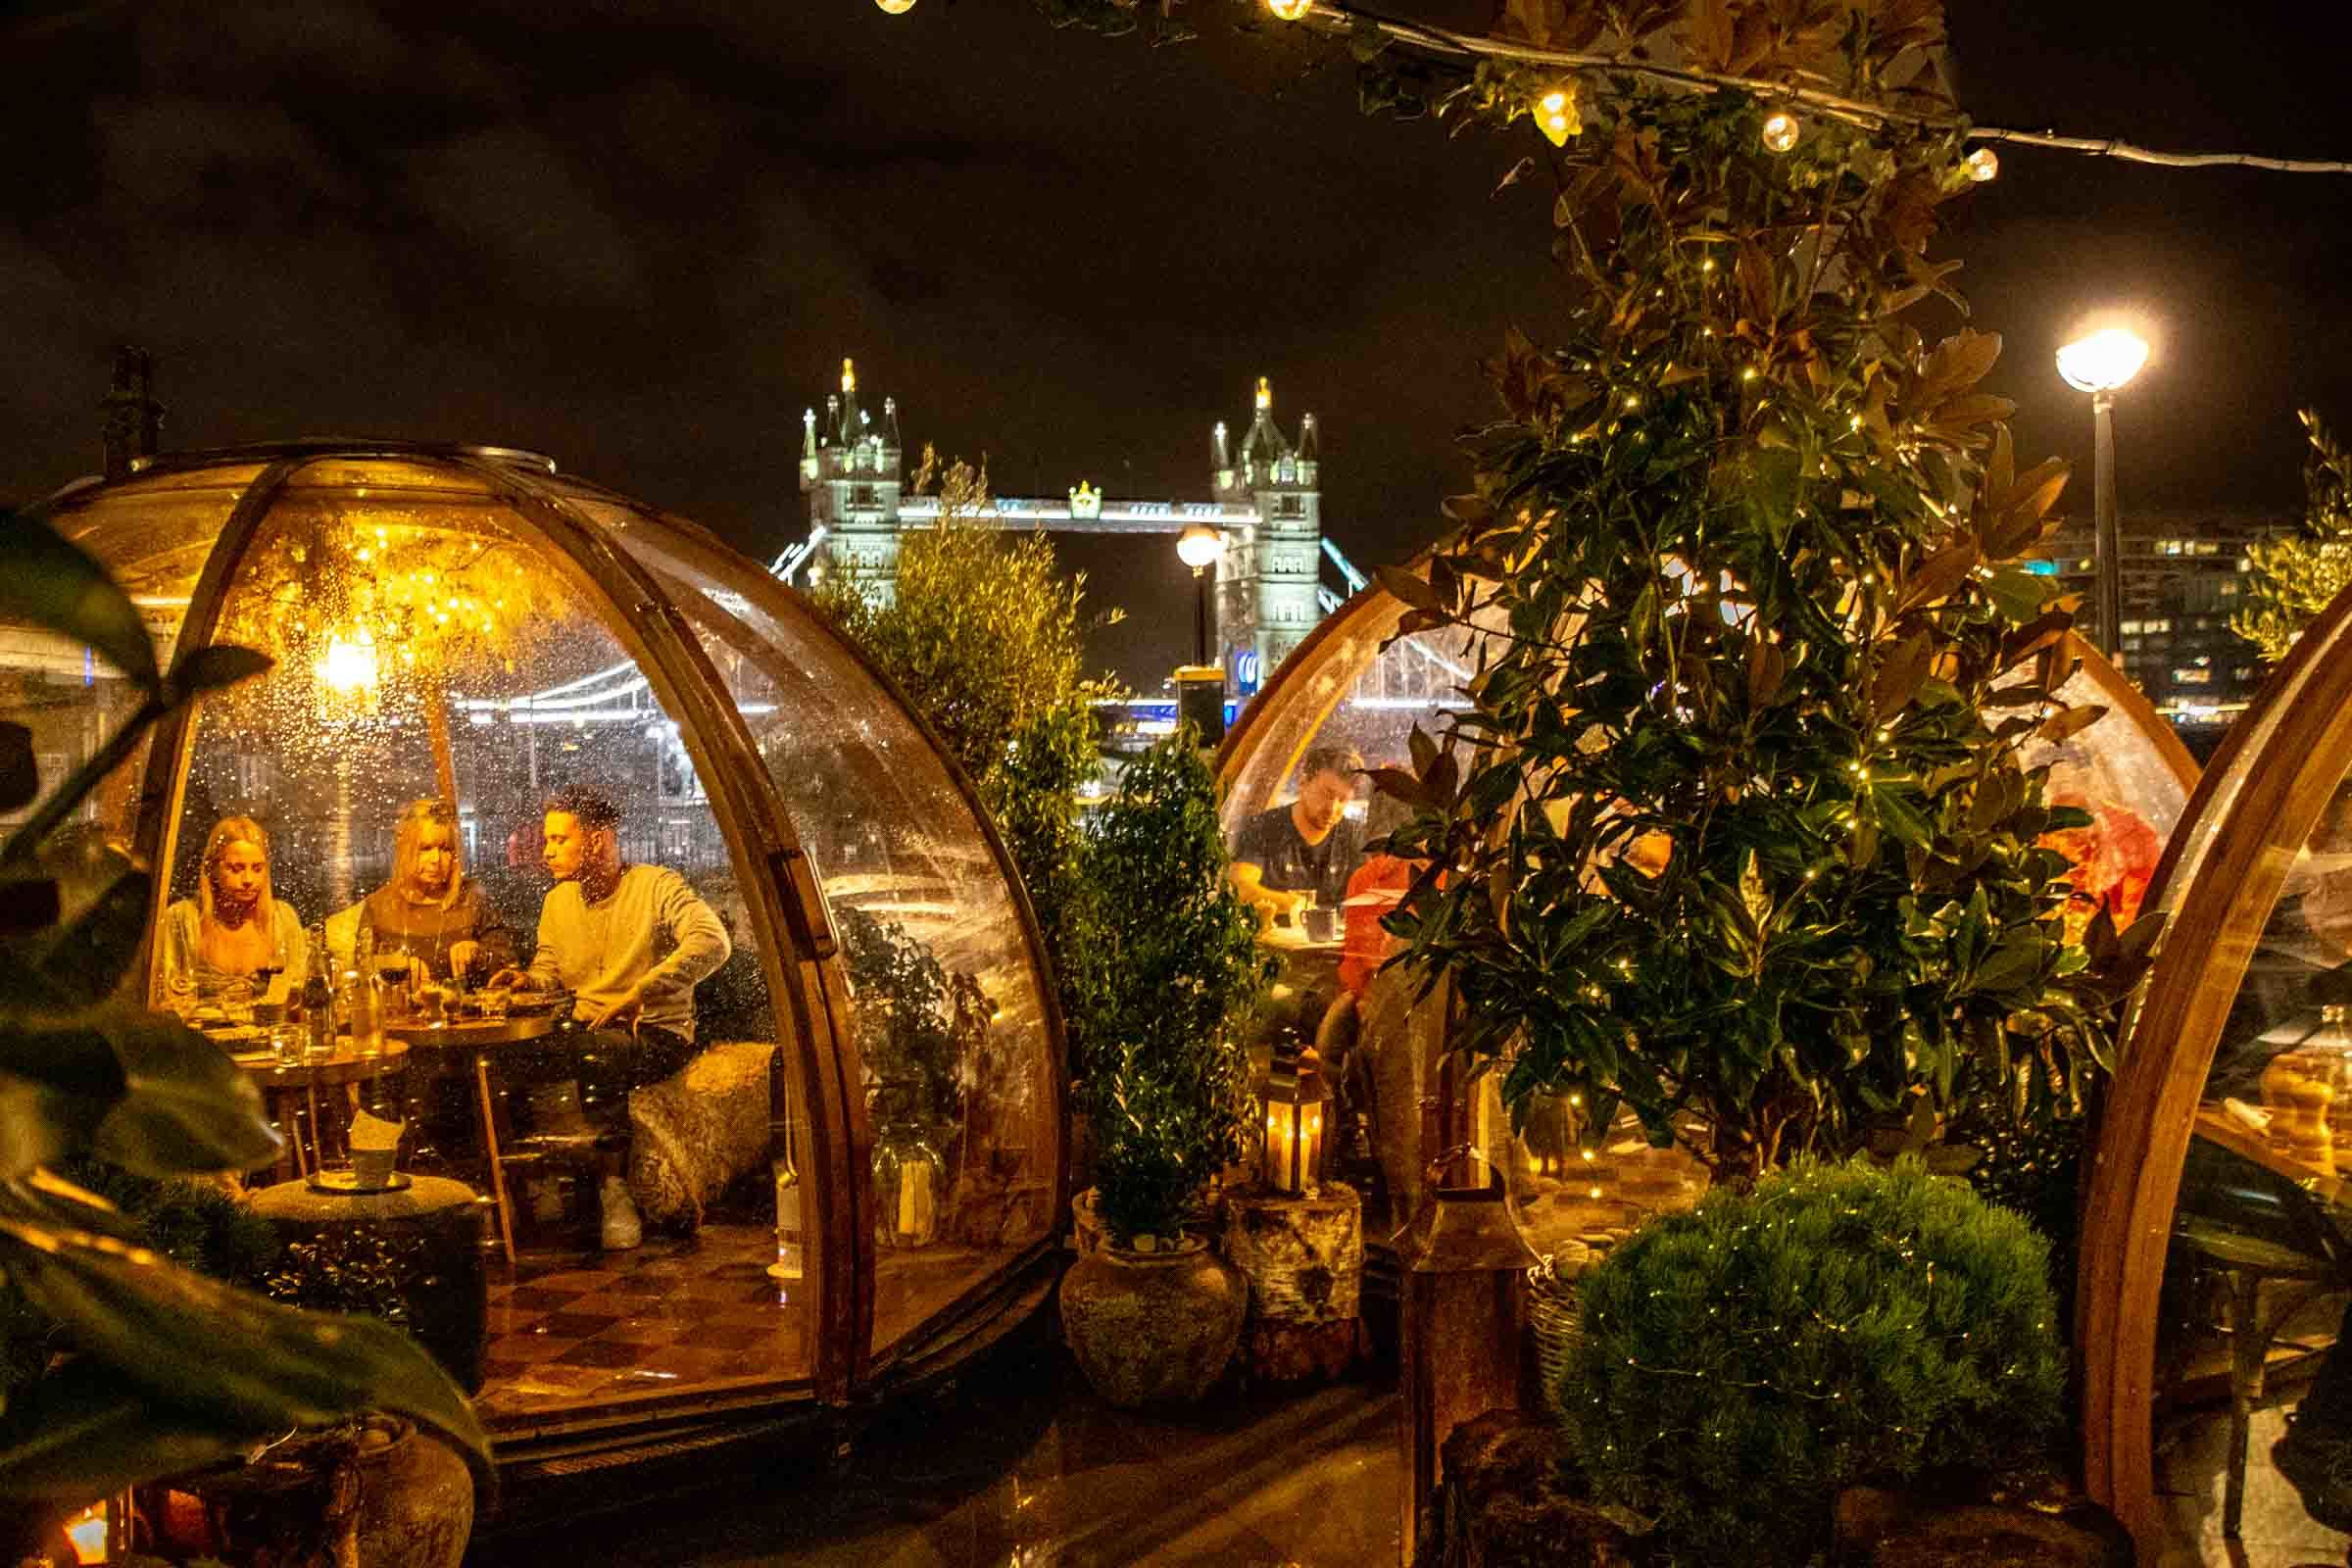 People sitting in transparent igloos overlooking the famous Tower Bridge in London